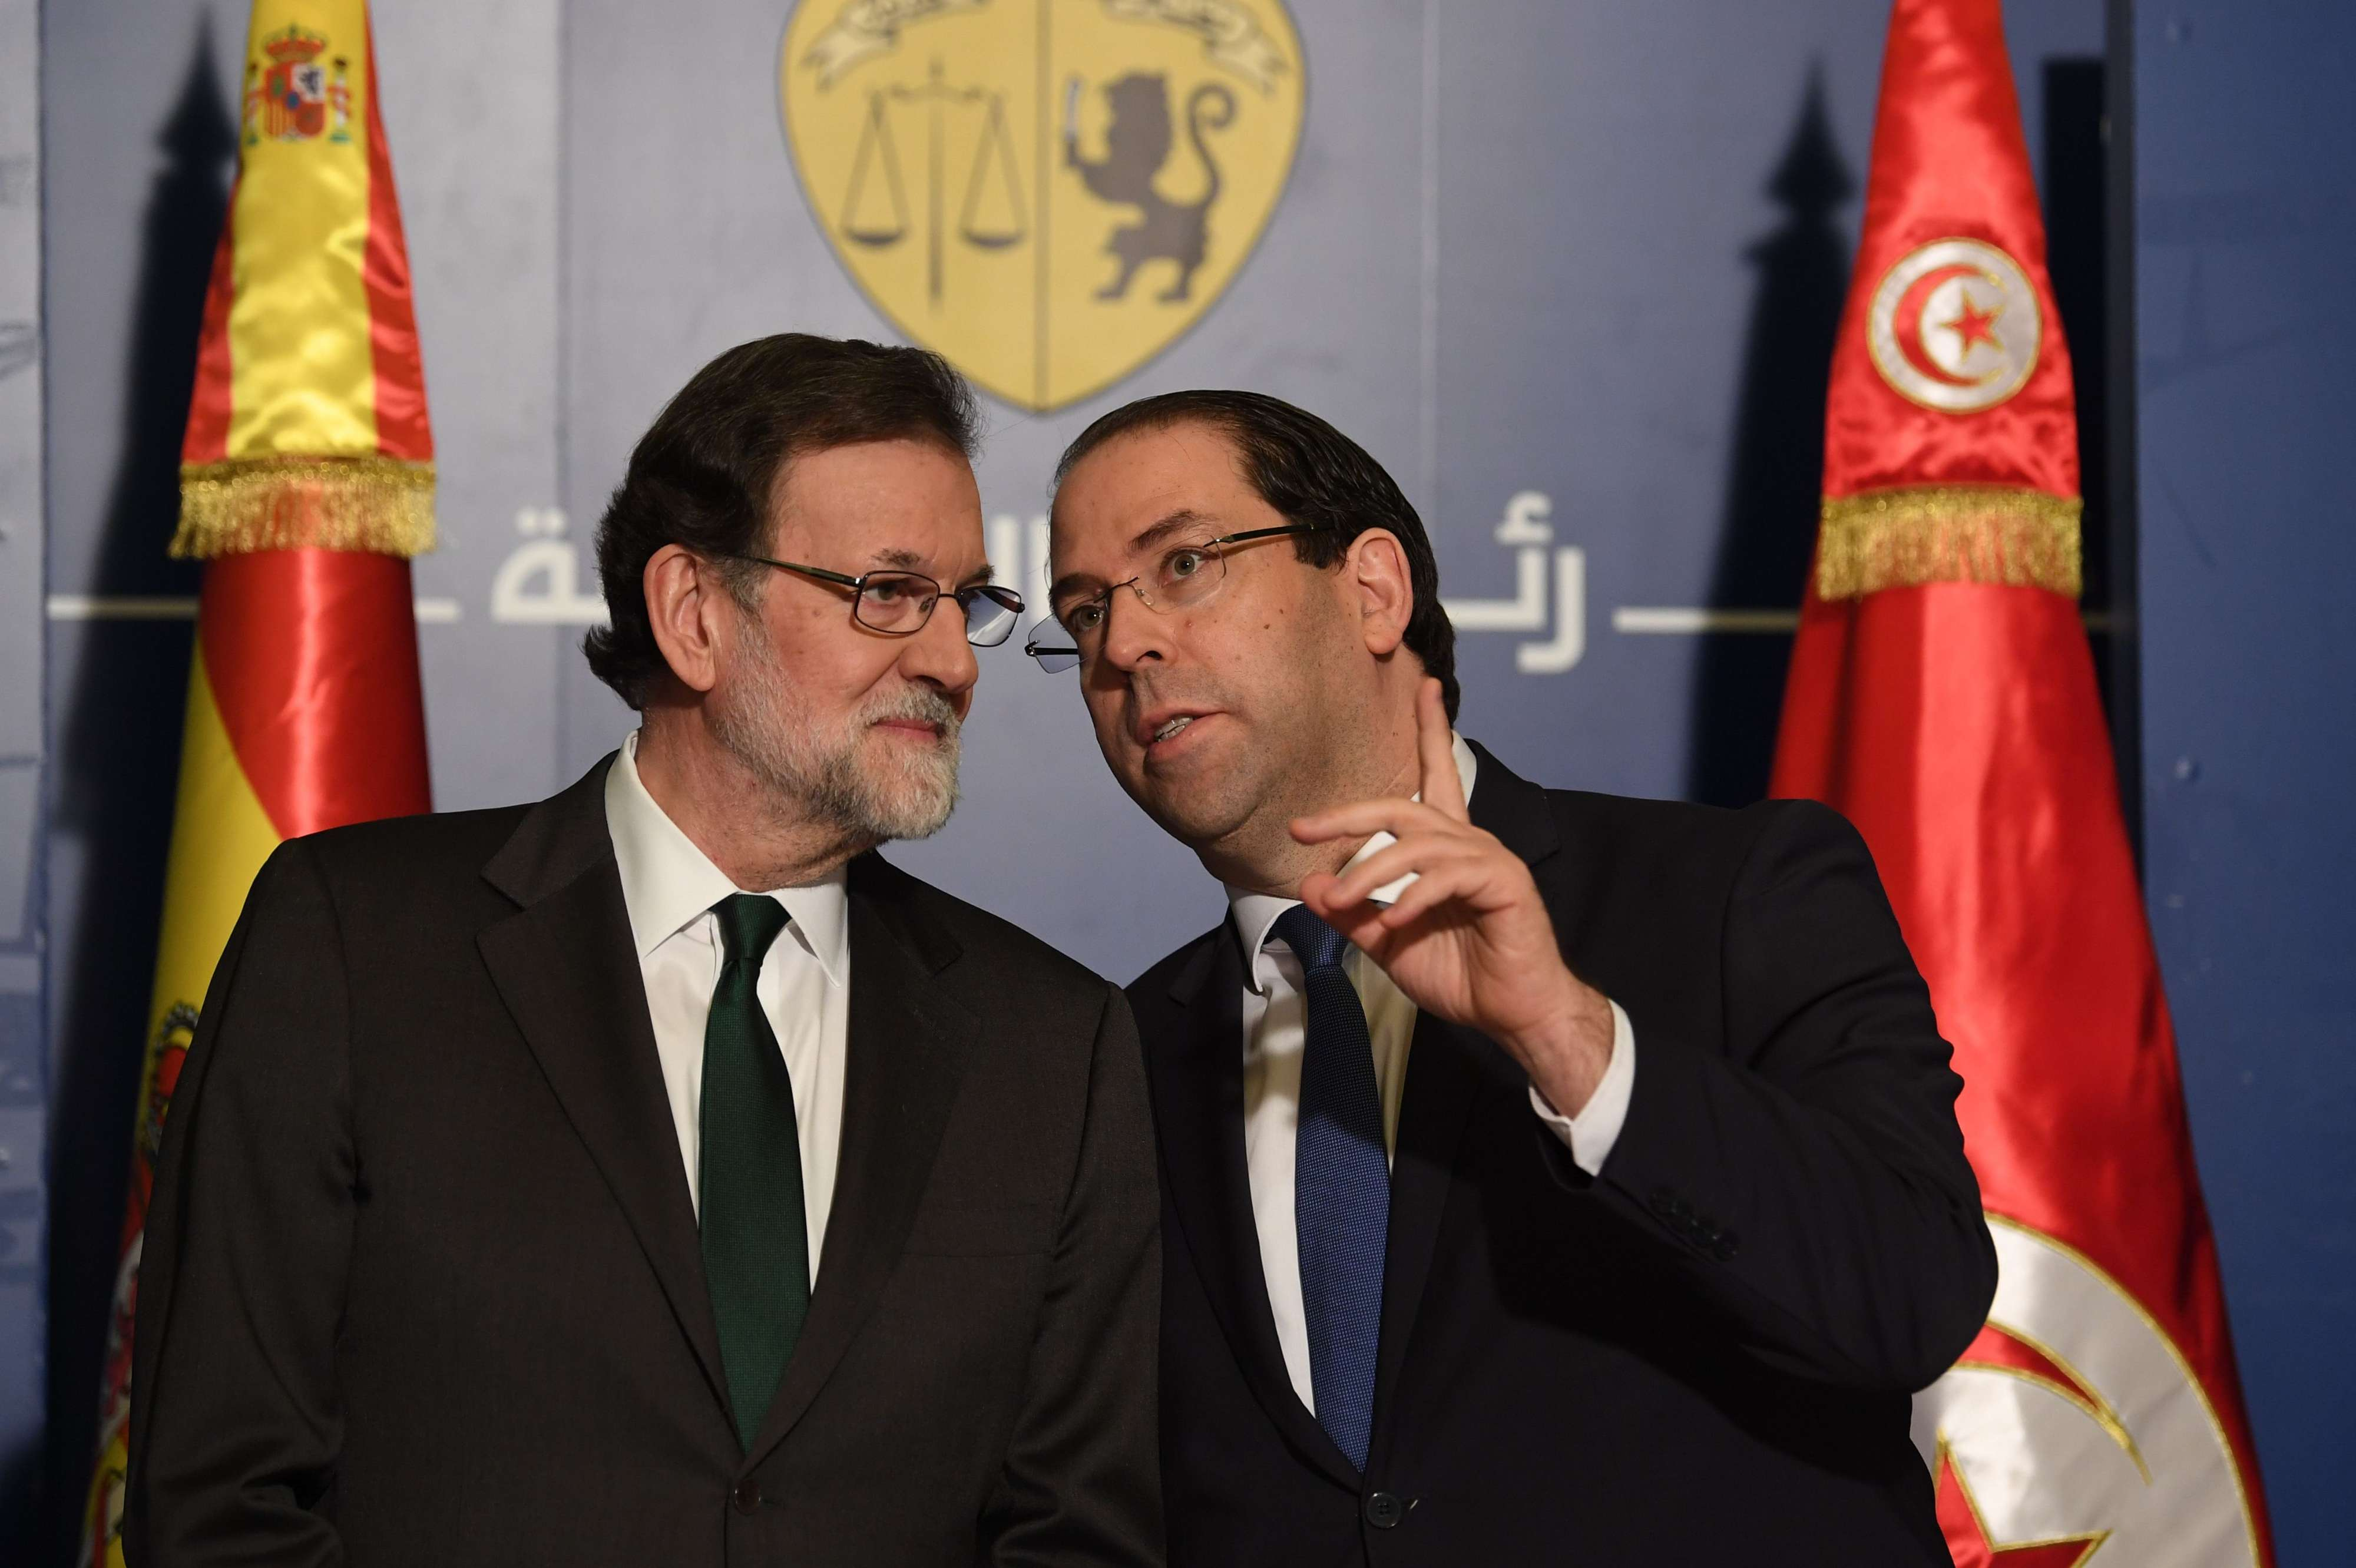 Spanish Prime Minister Mariano Rajoy (L) listens to his Tunisian counterpart Youssef Chahed after their meeting in Tunis, on February 26. (AFP)